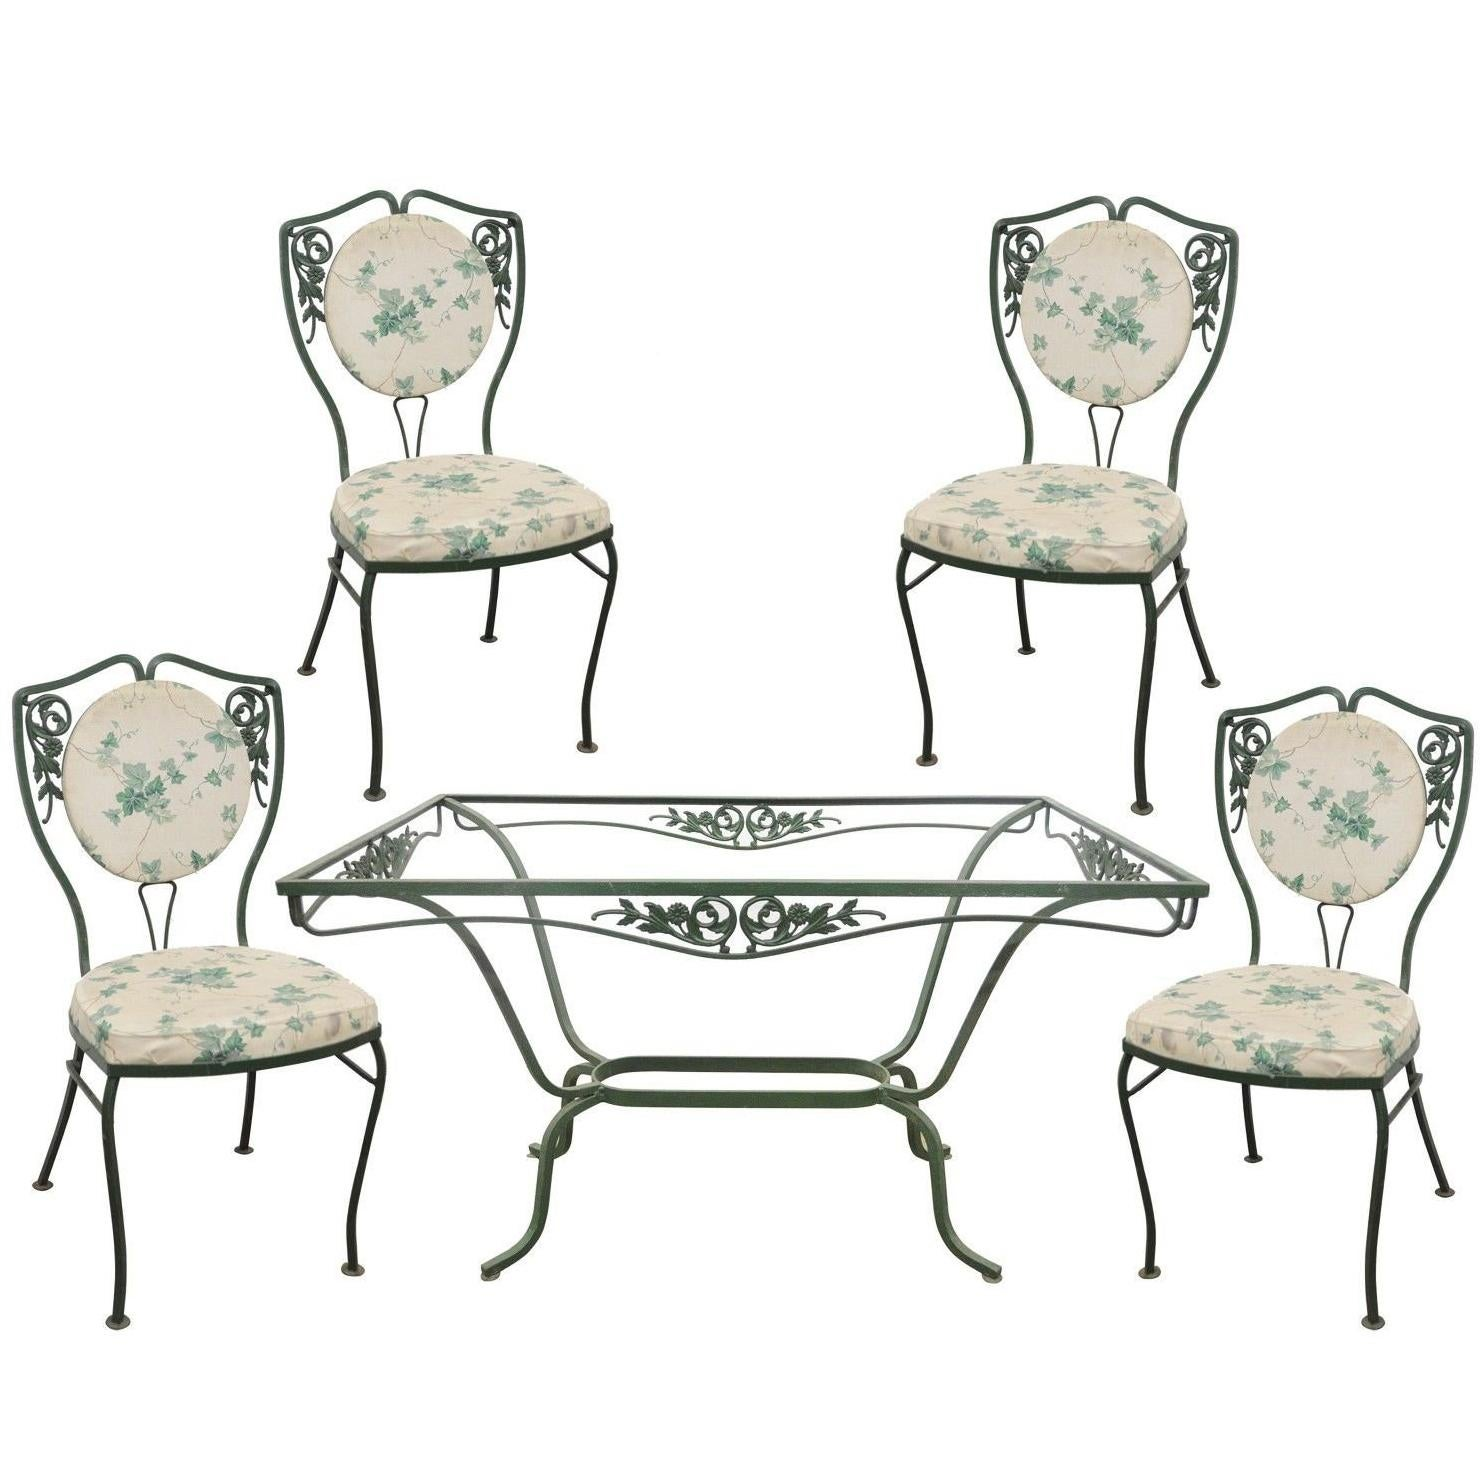 four chairs furniture wooden church chair salterini wrought iron patio dining set table garden for sale